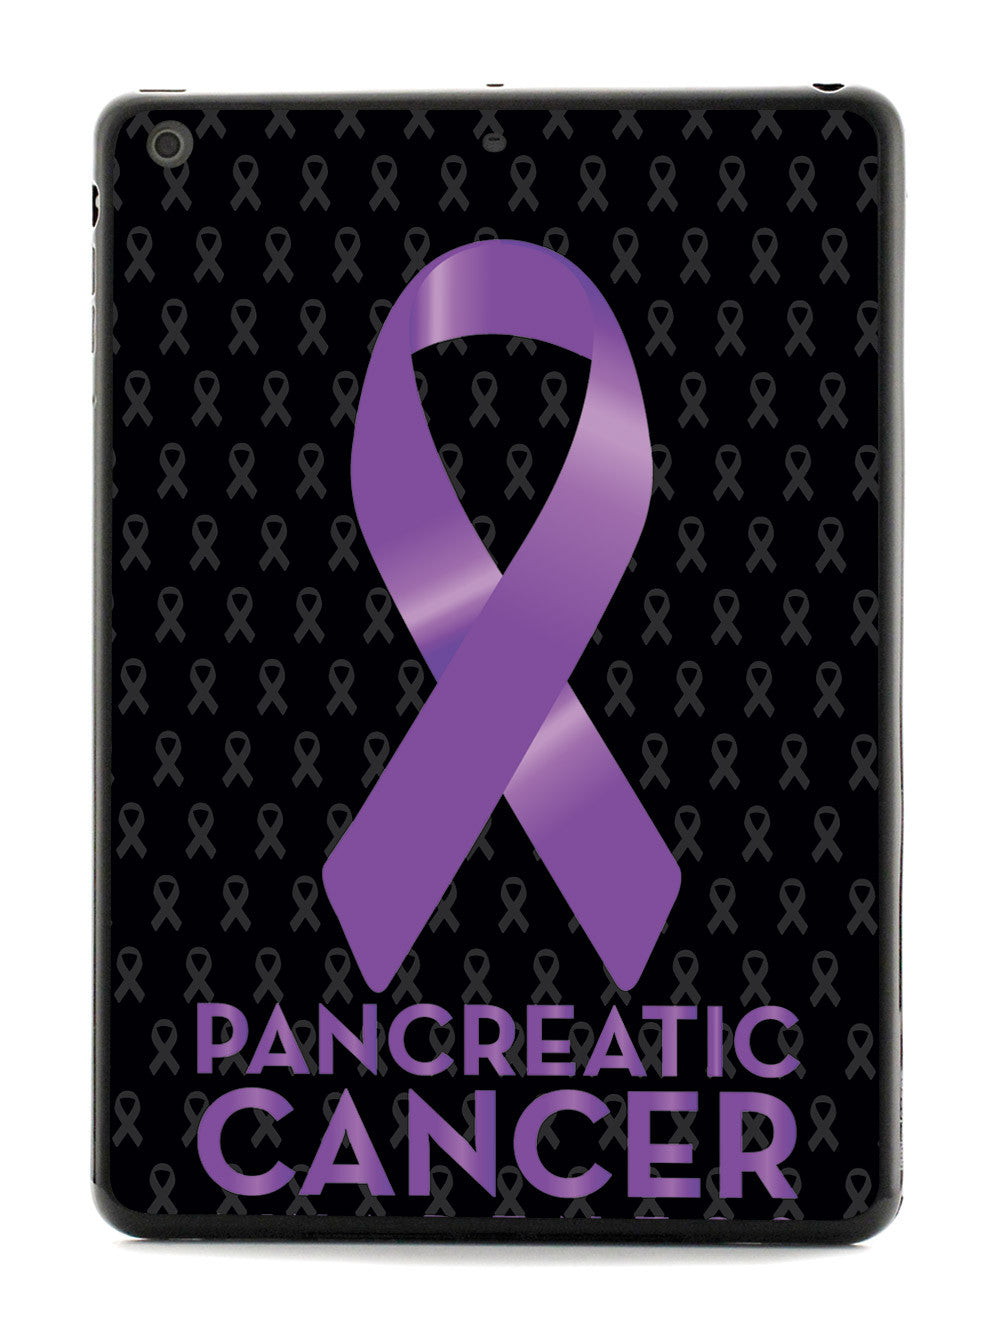 Pancreatic Cancer Awareness - Black Case